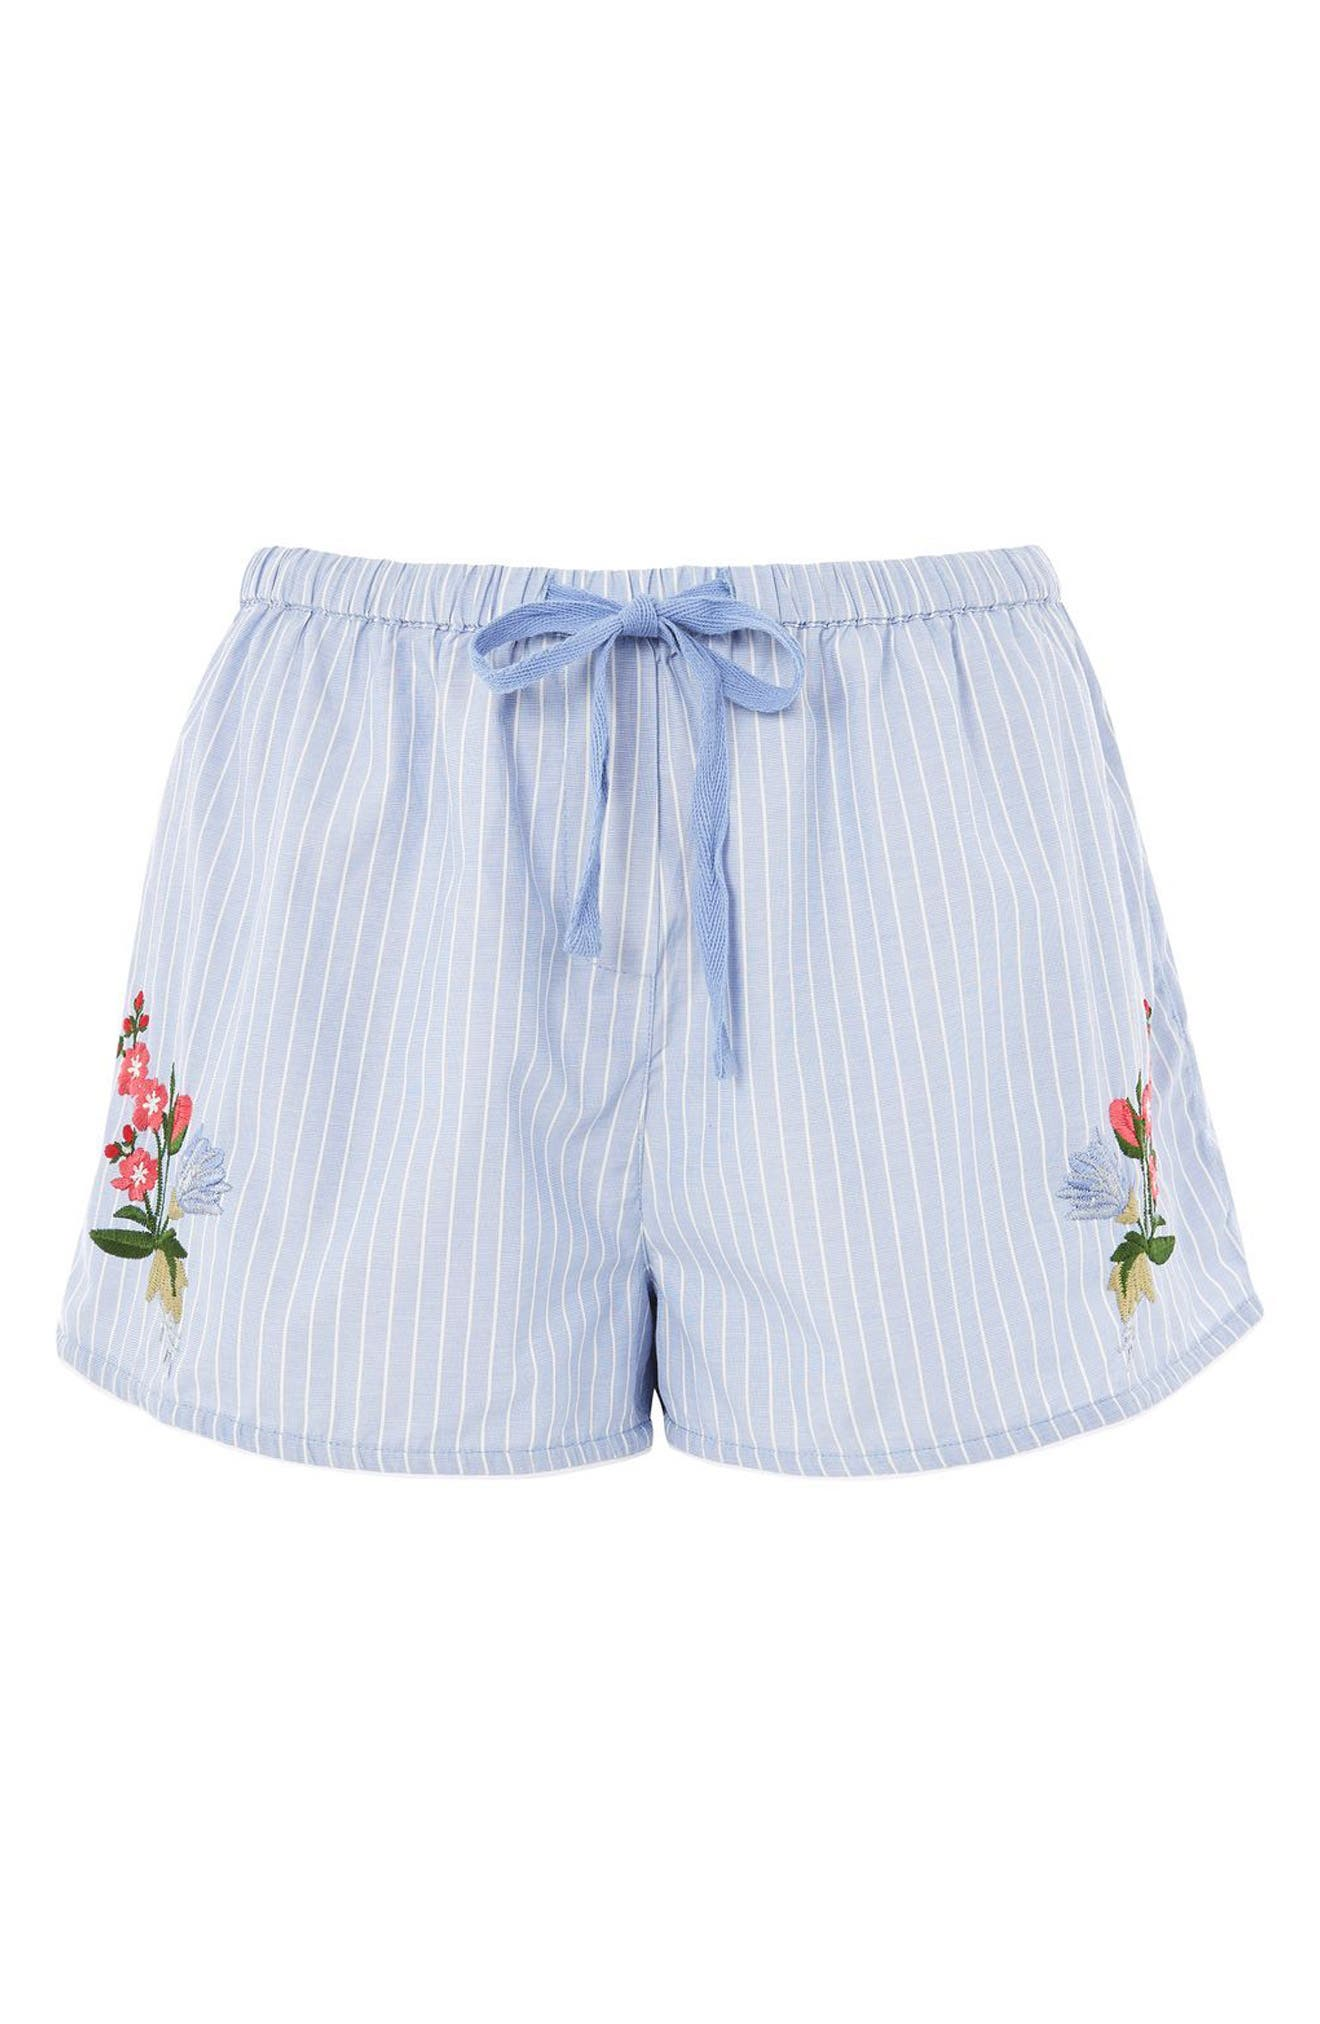 Embroidered Lounge Shorts,                         Main,                         color, Blue Multi